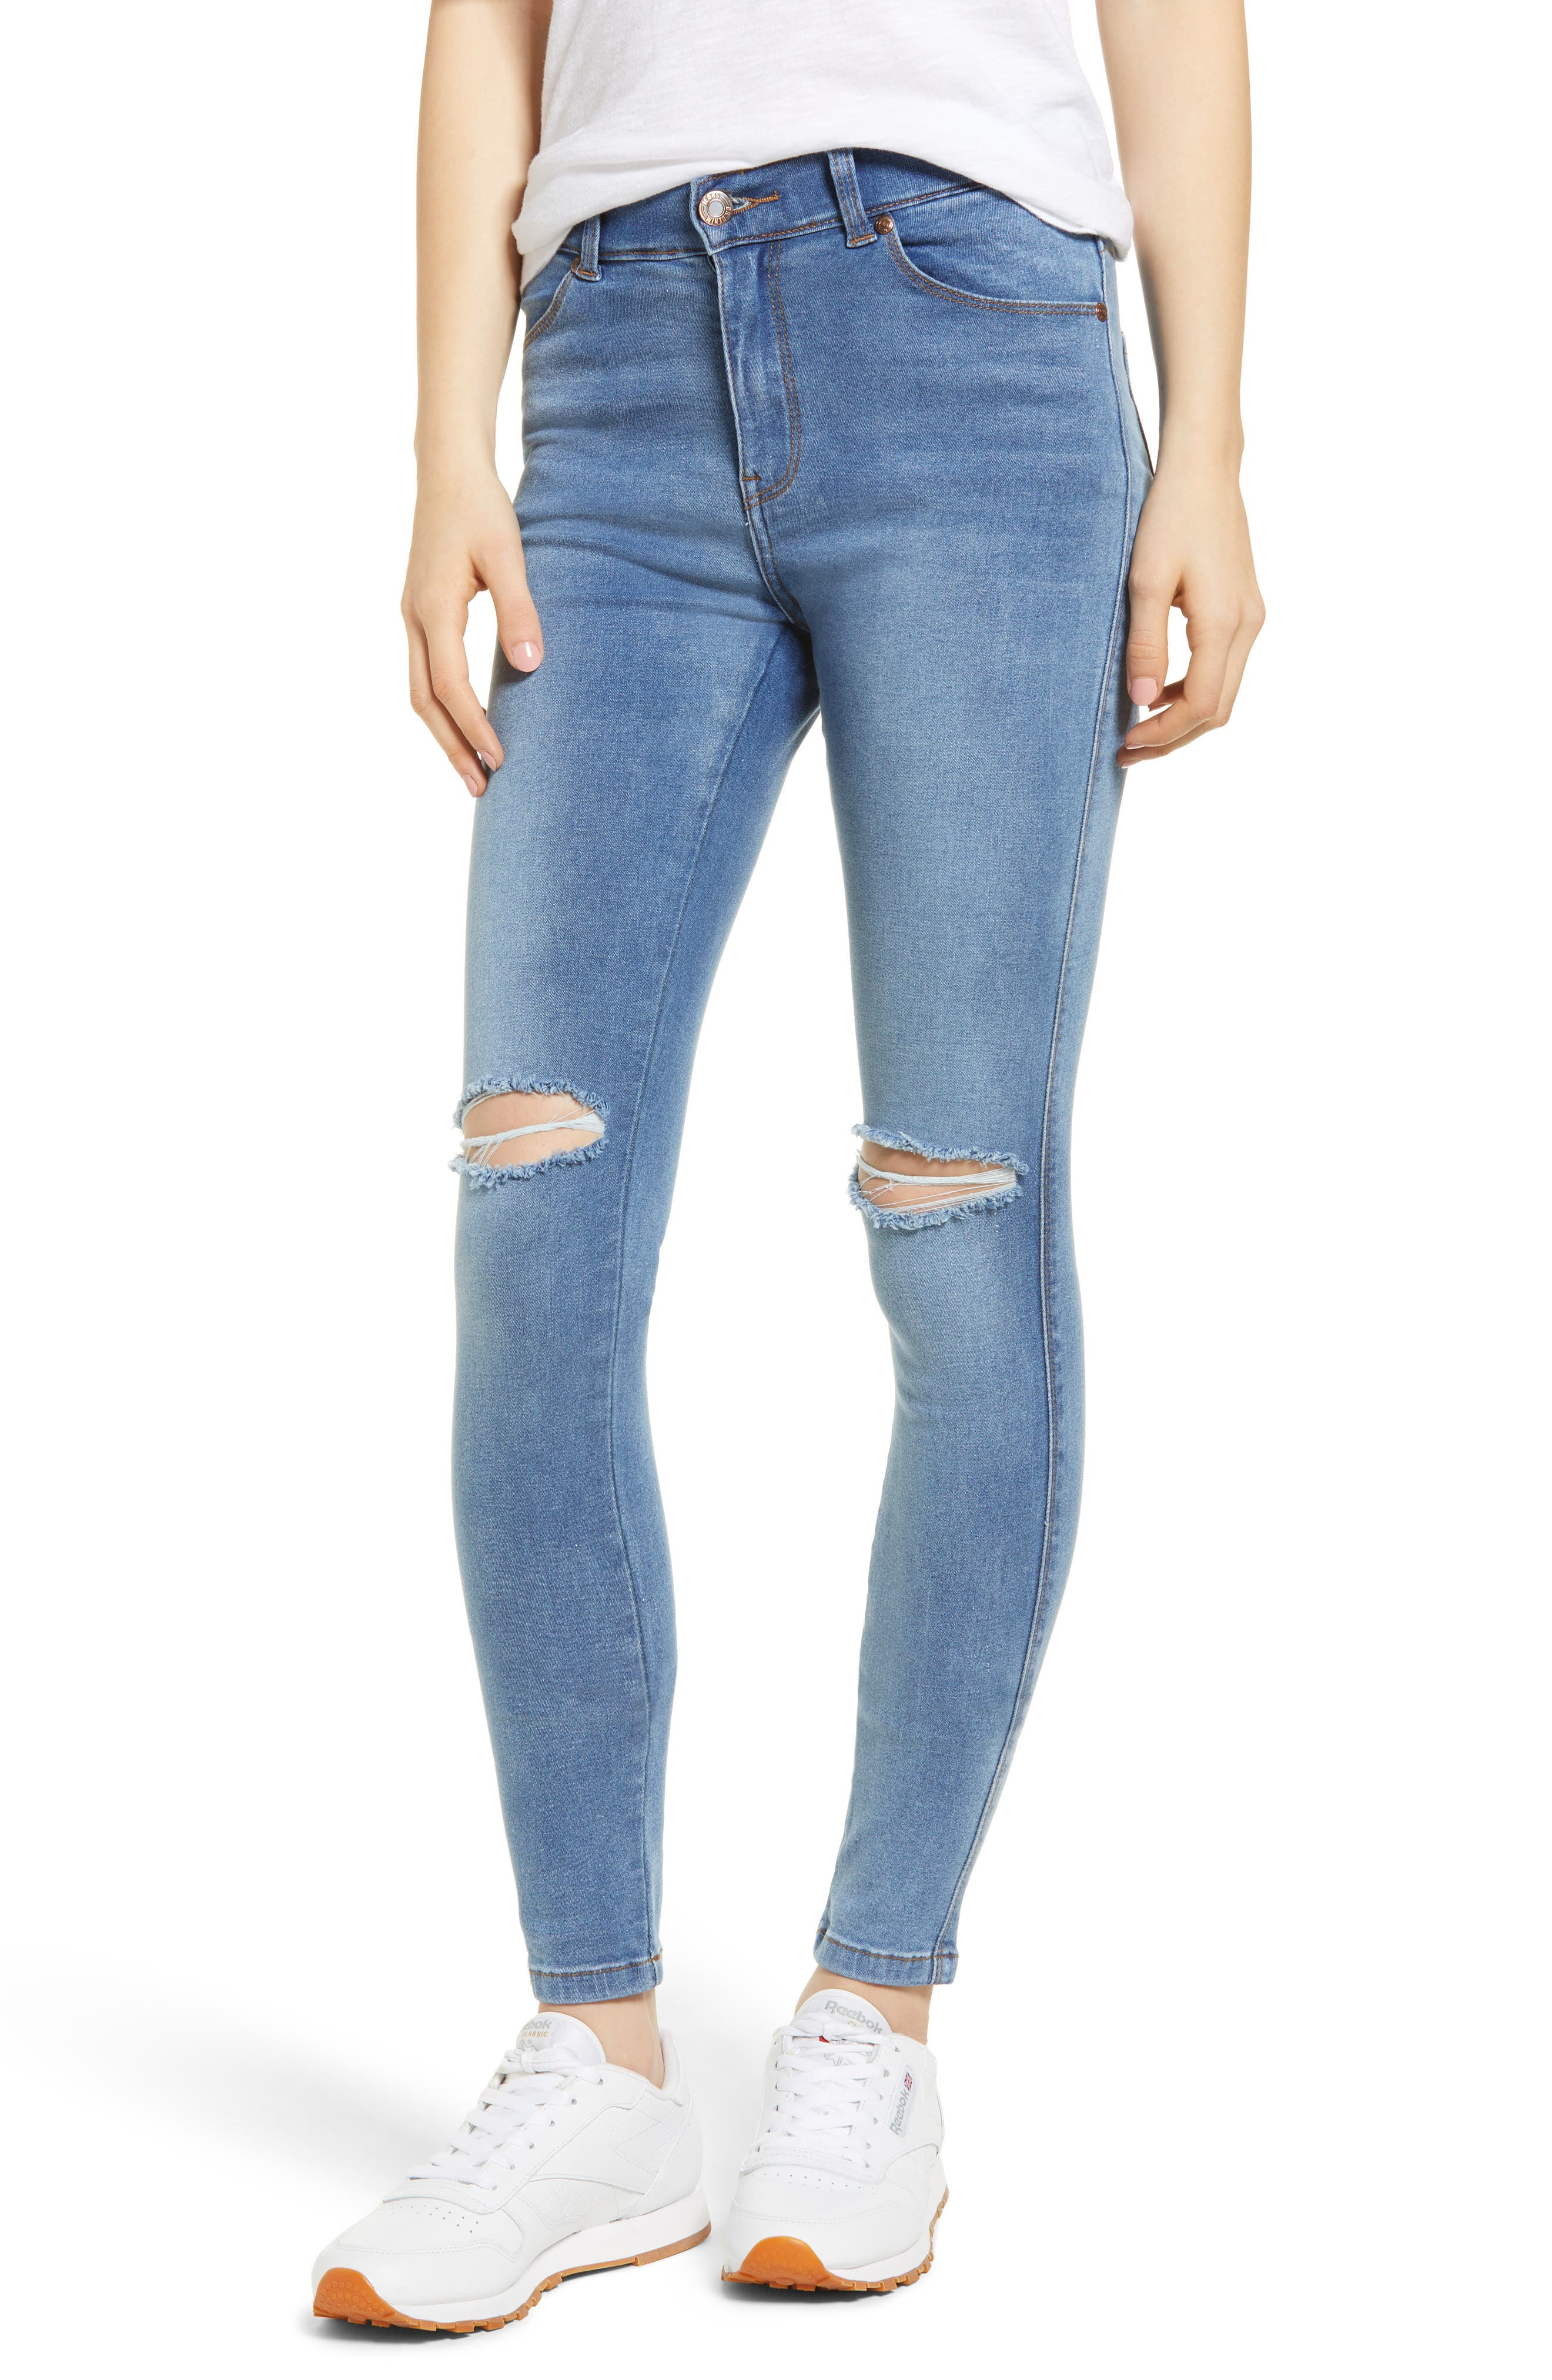 Dr. Denim Supply Co. Lexy Ripped Skinny Jeans